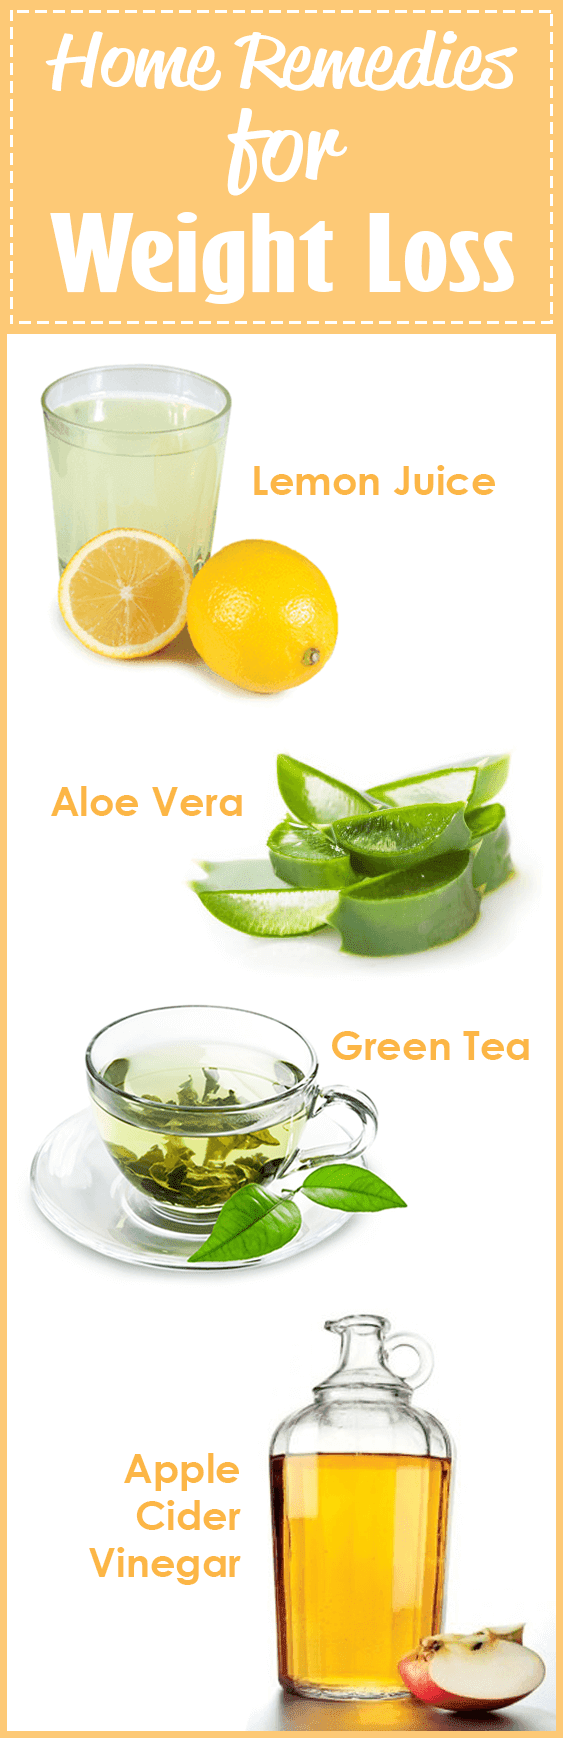 Home Remedies to Lose Weight Naturally •